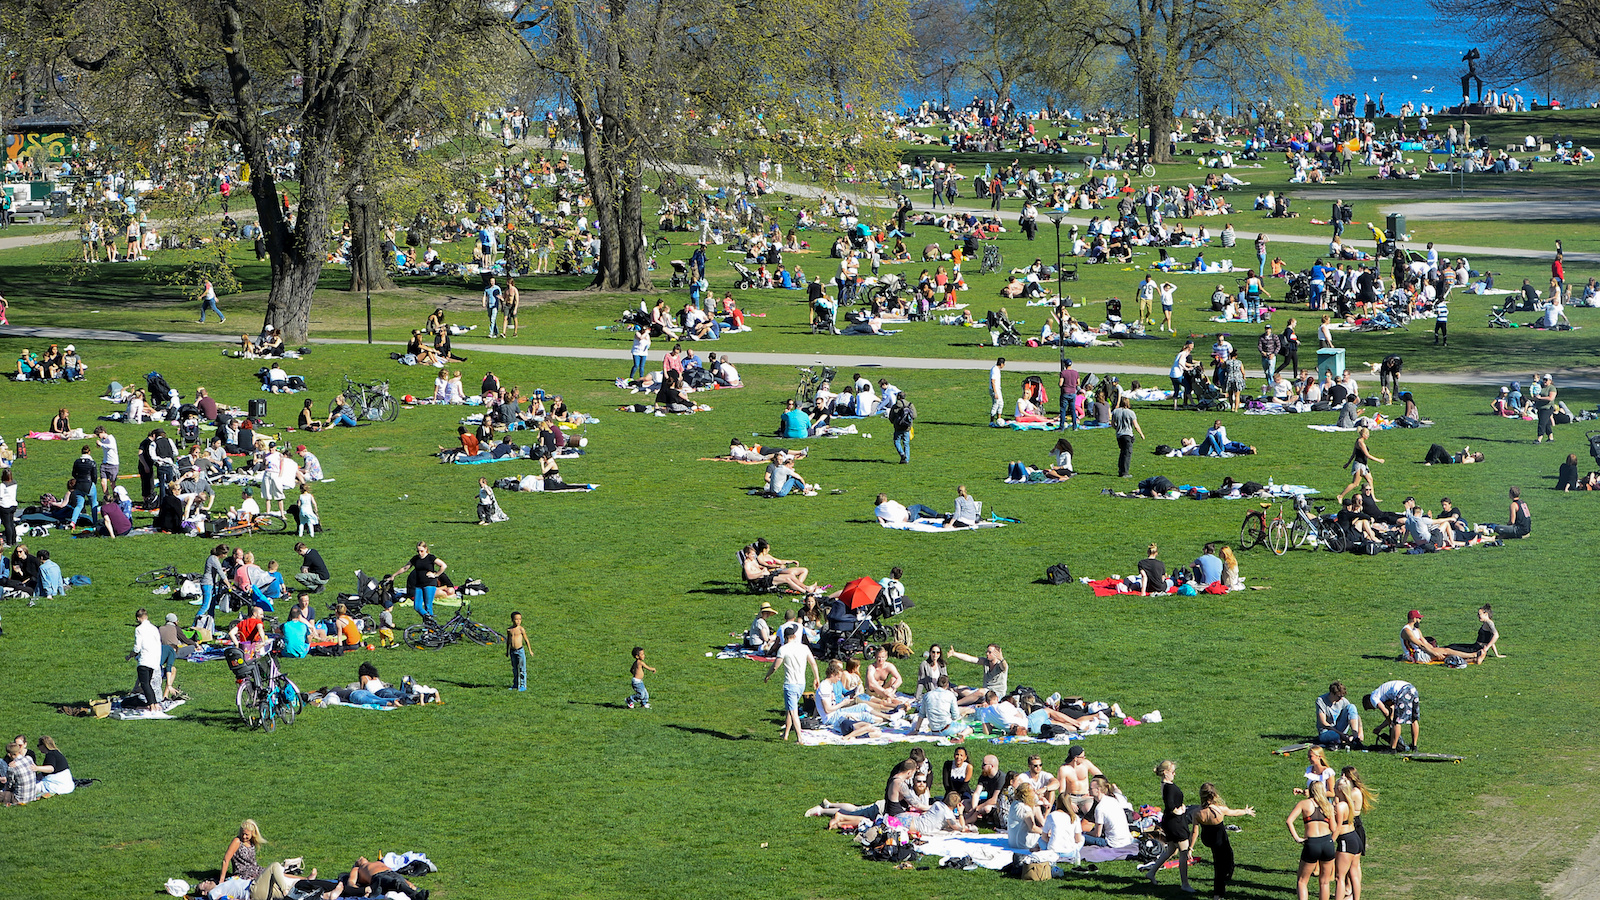 People enjoy the sunny weather in Tantolunden park in central Stockholm, Sweden, May 5, 2016.  TT News Agency/Maja Suslin/via REUTERS   ATTENTION EDITORS - THIS IMAGE WAS PROVIDED BY A THIRD PARTY. FOR EDITORIAL USE ONLY. SWEDEN OUT. NO COMMERCIAL OR EDITORIAL SALES IN SWEDEN. NO COMMERCIAL SALES. - RTX2D06S